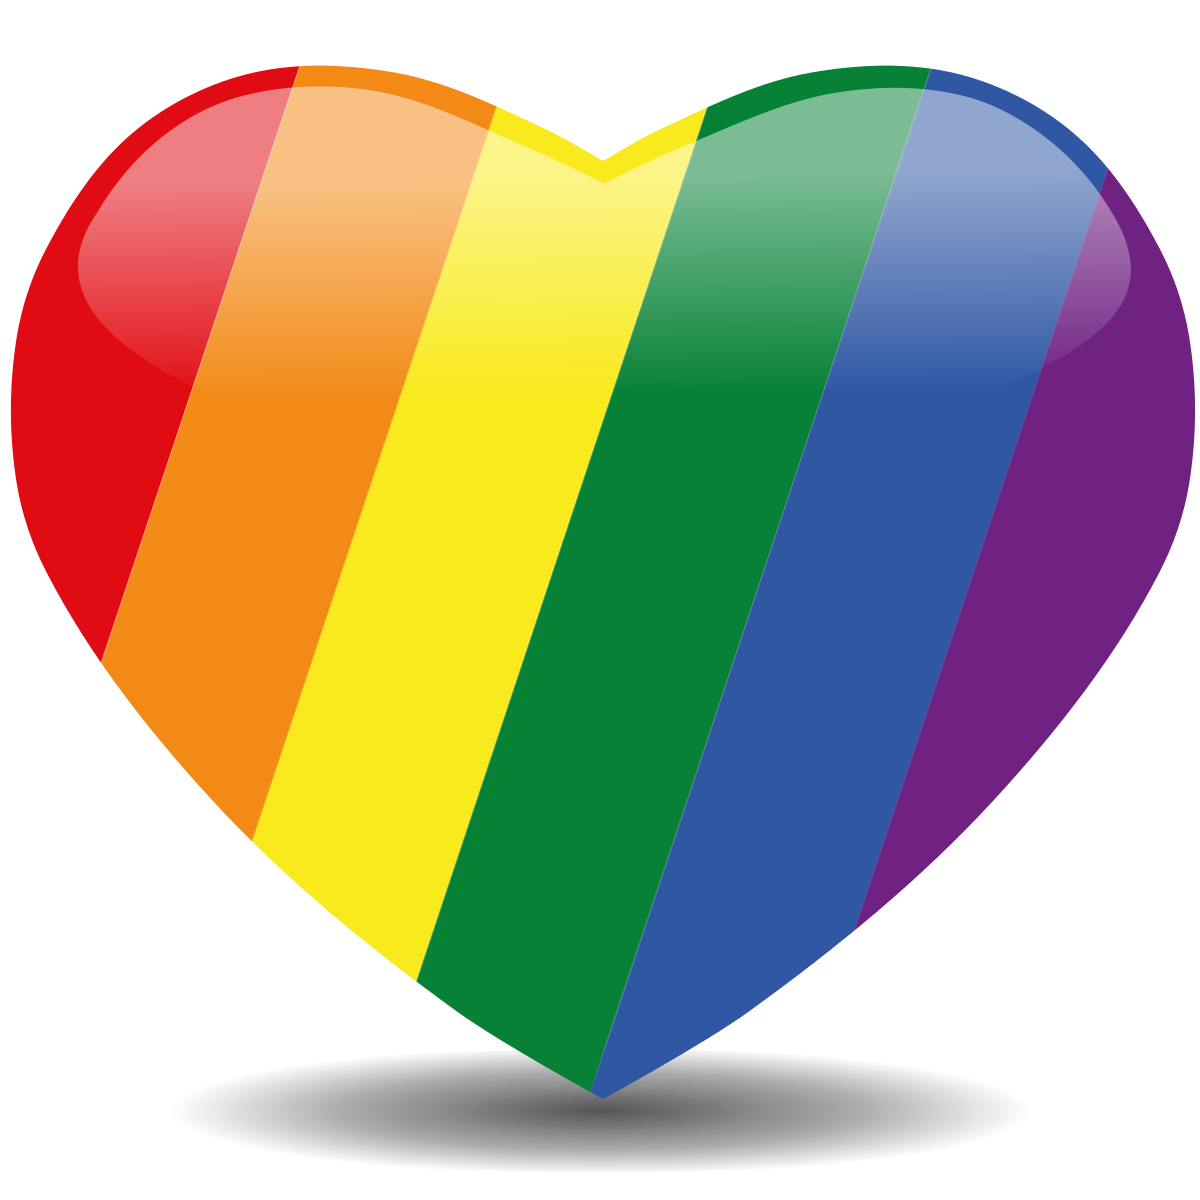 rainbow heart png